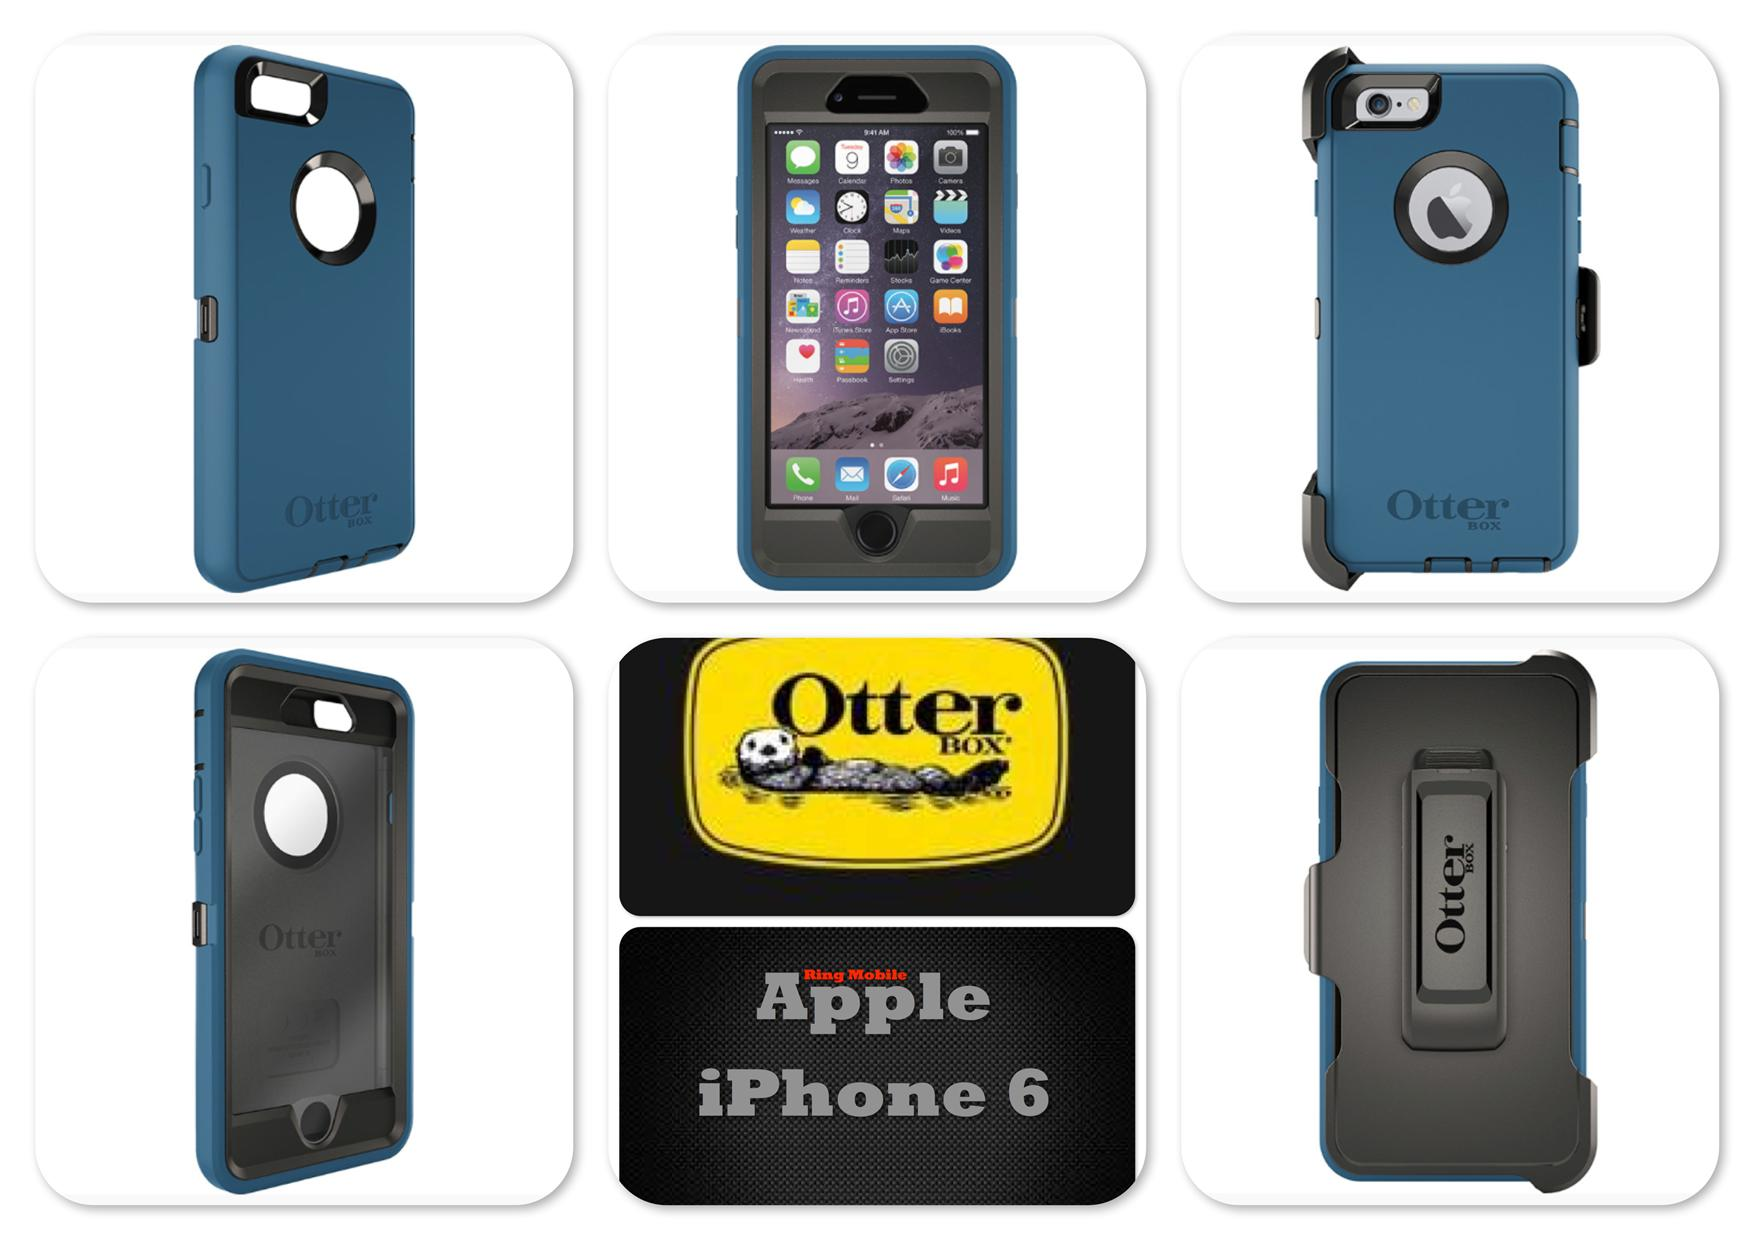 "Bdotcom = Apple iPhone 6 4.7"" Otterbox Defender Series Case Ink Blue"